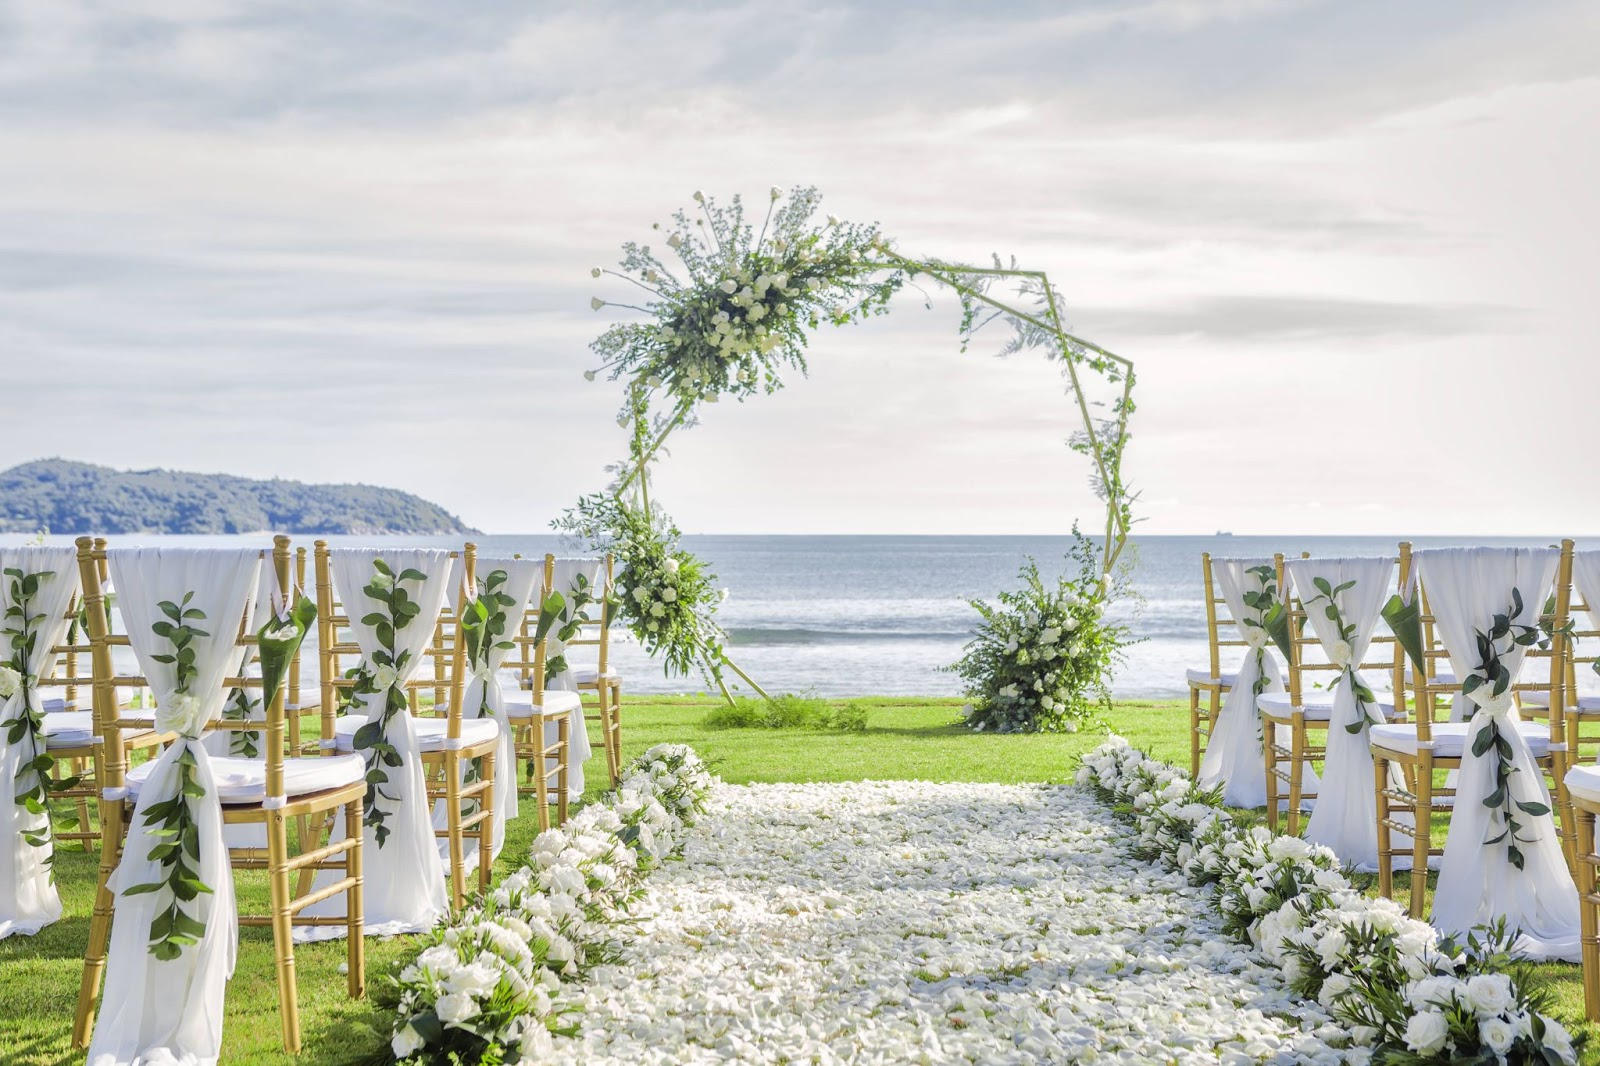 The isle of a beach wedding decorated with white flowers and greenery.